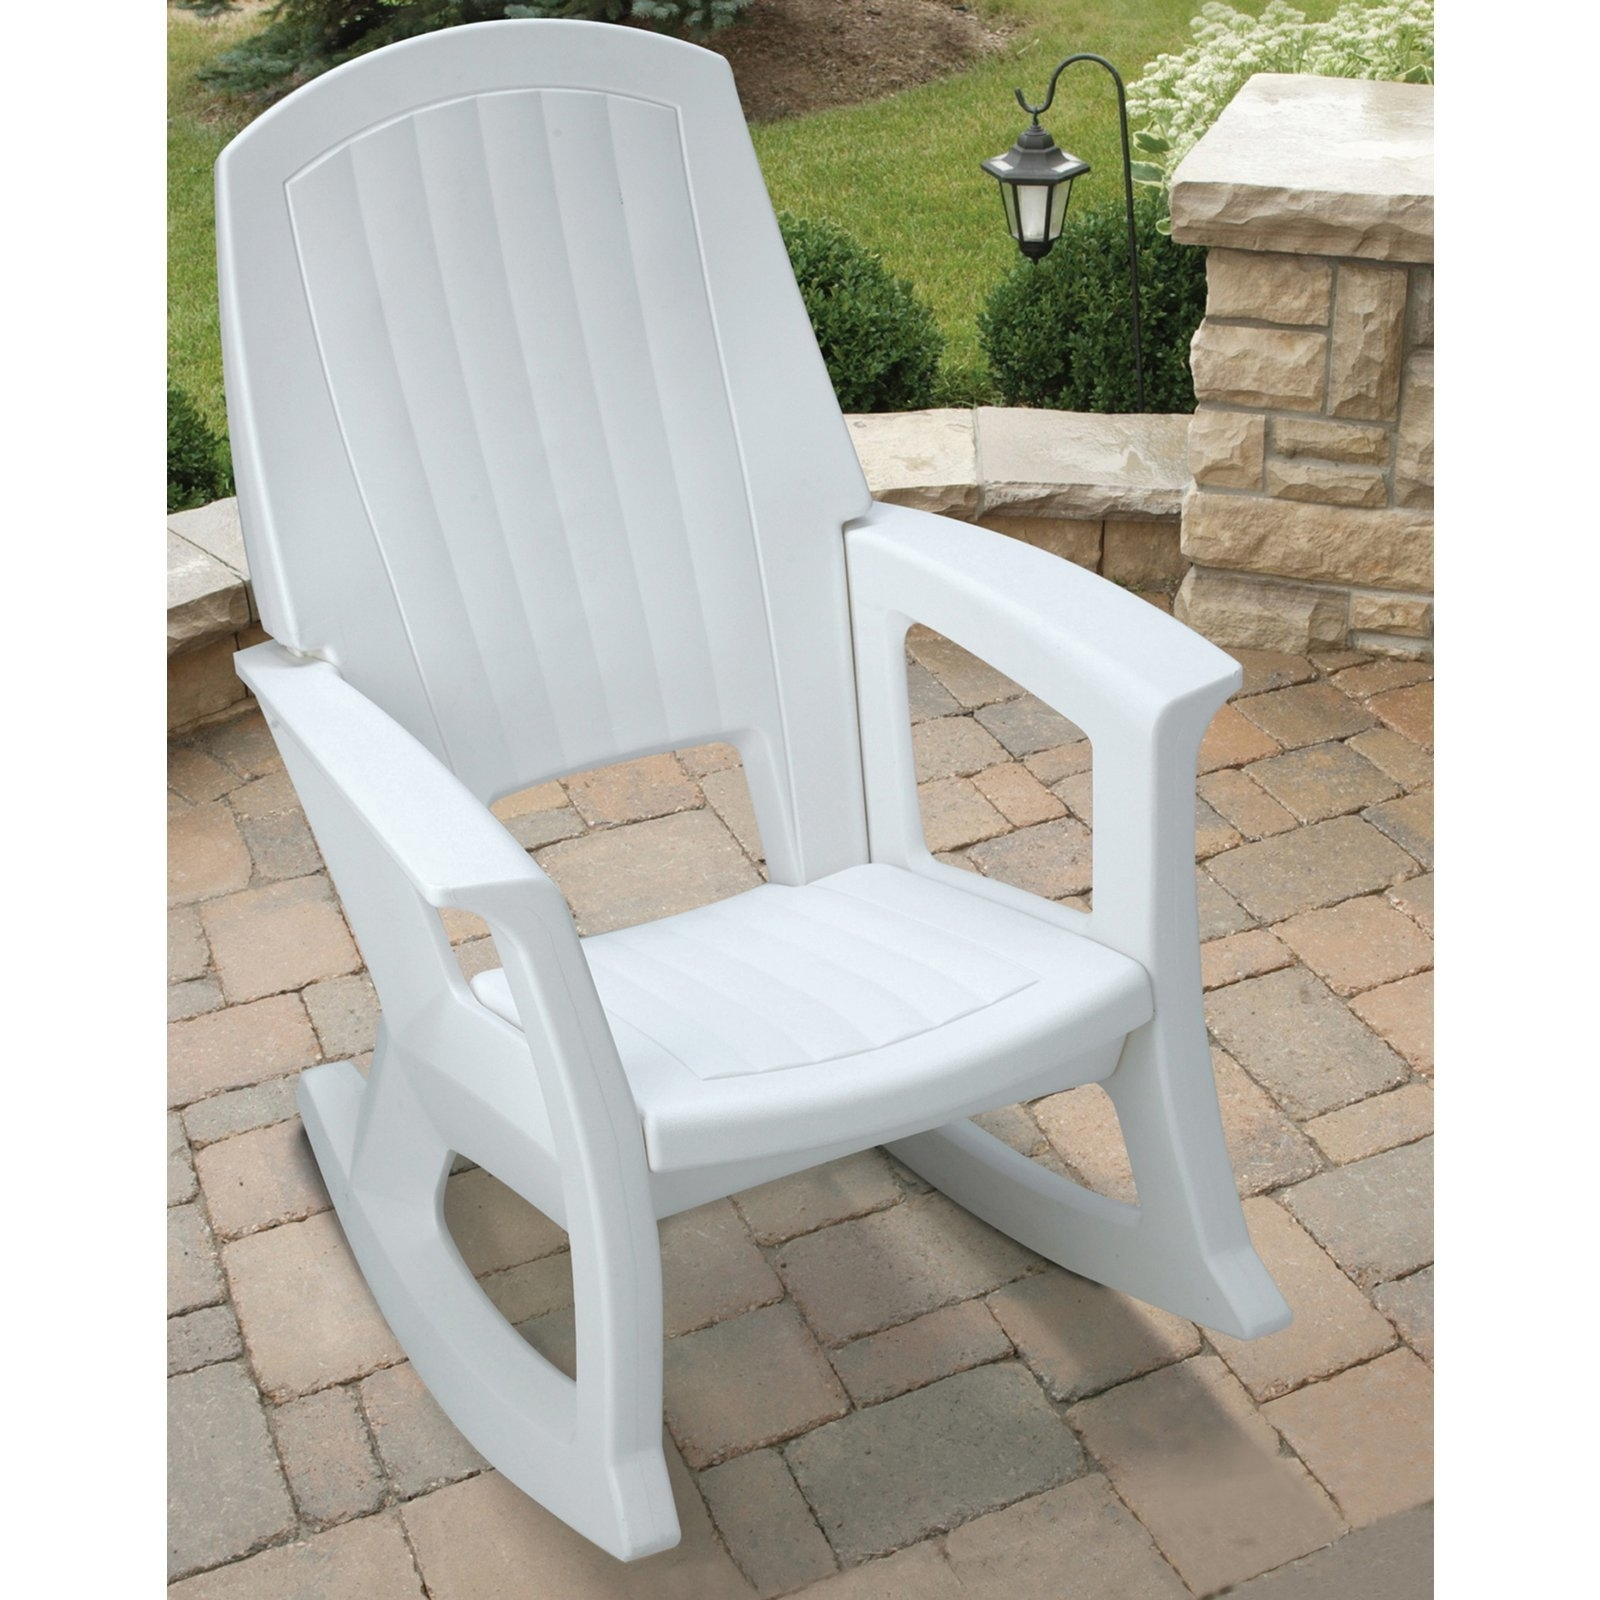 Rocking Chairs For Outdoors With 2019 Lovely Cheap Patio Chairs Semco Recycled Plastic Rocking Chair (View 16 of 20)